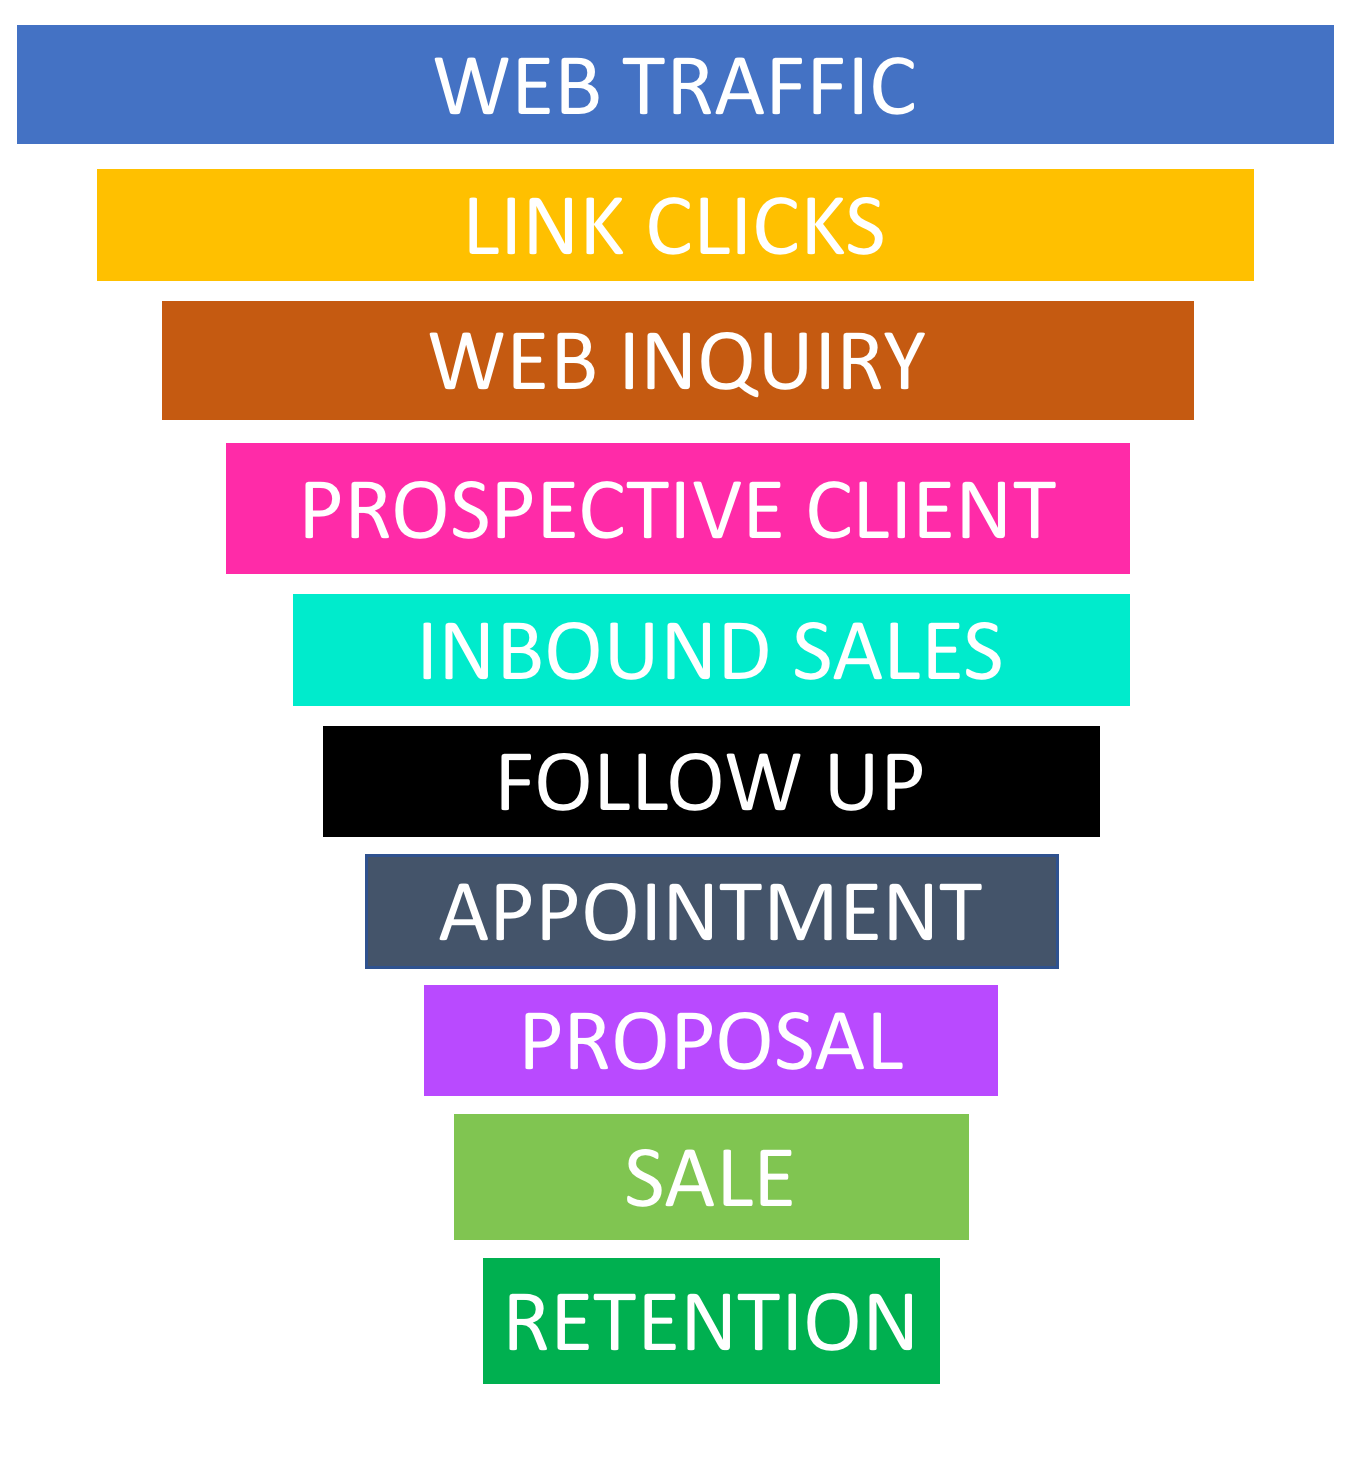 digital marketing agency that works hard to put their clients first